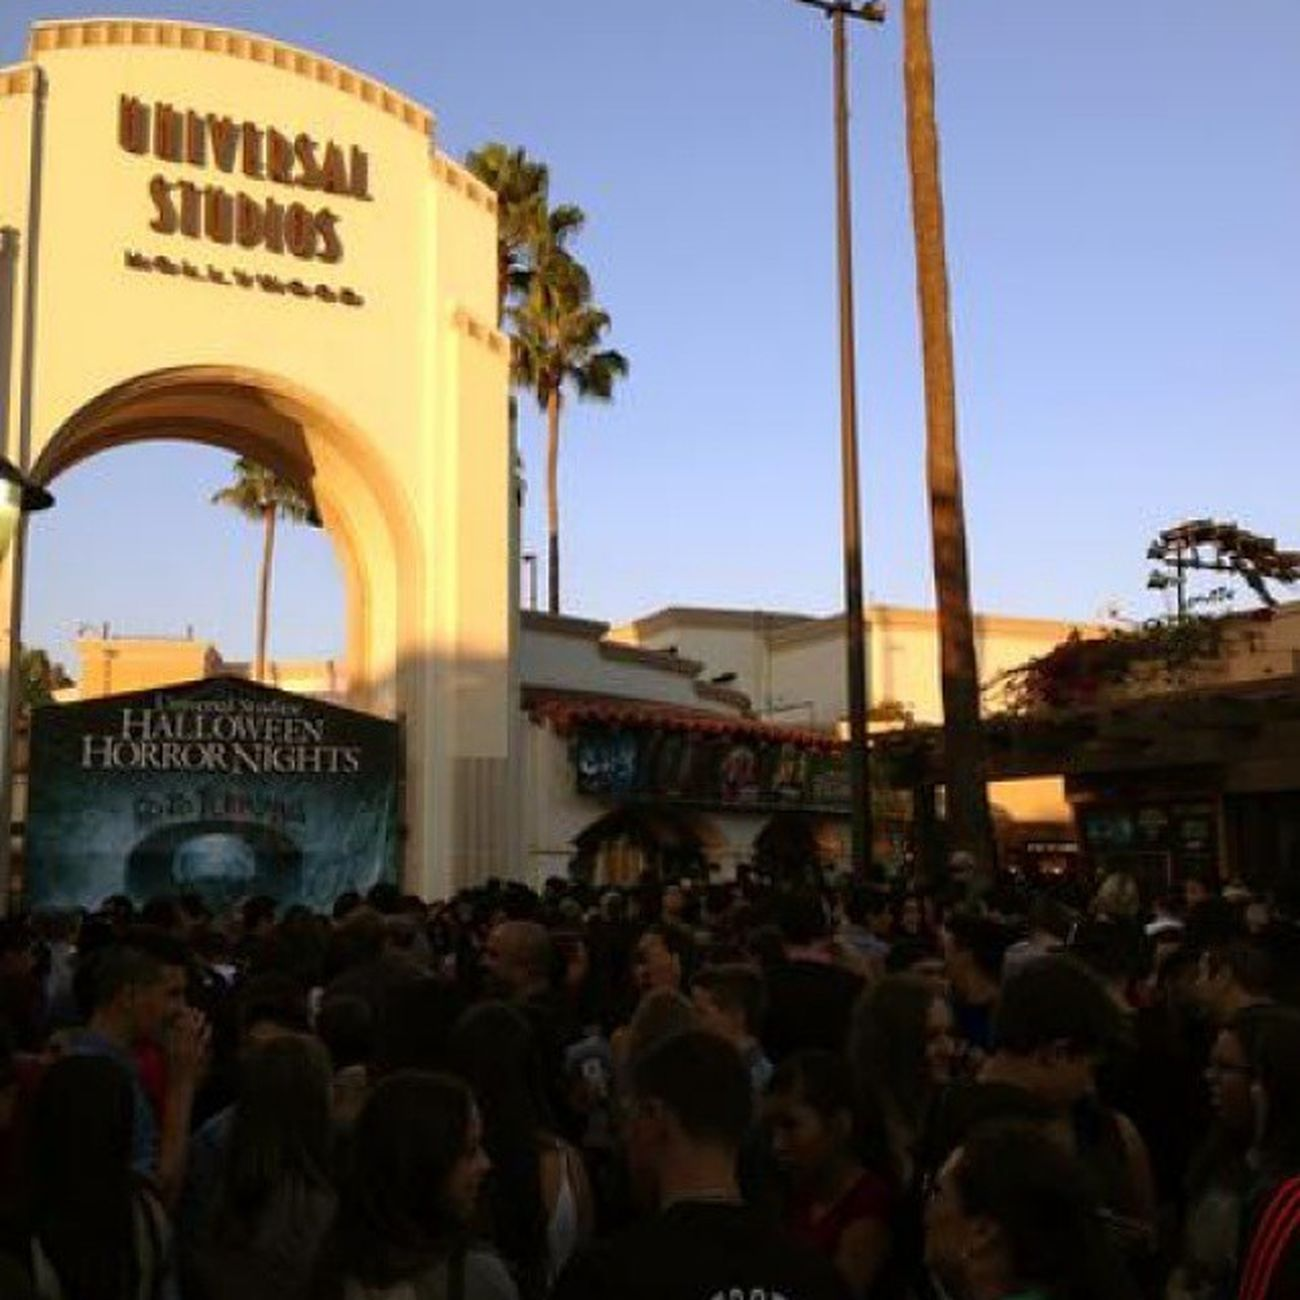 Last night was the bomb dot com. Universal Horrornights Clowns Avp walkingdead thepurge vampires funnight